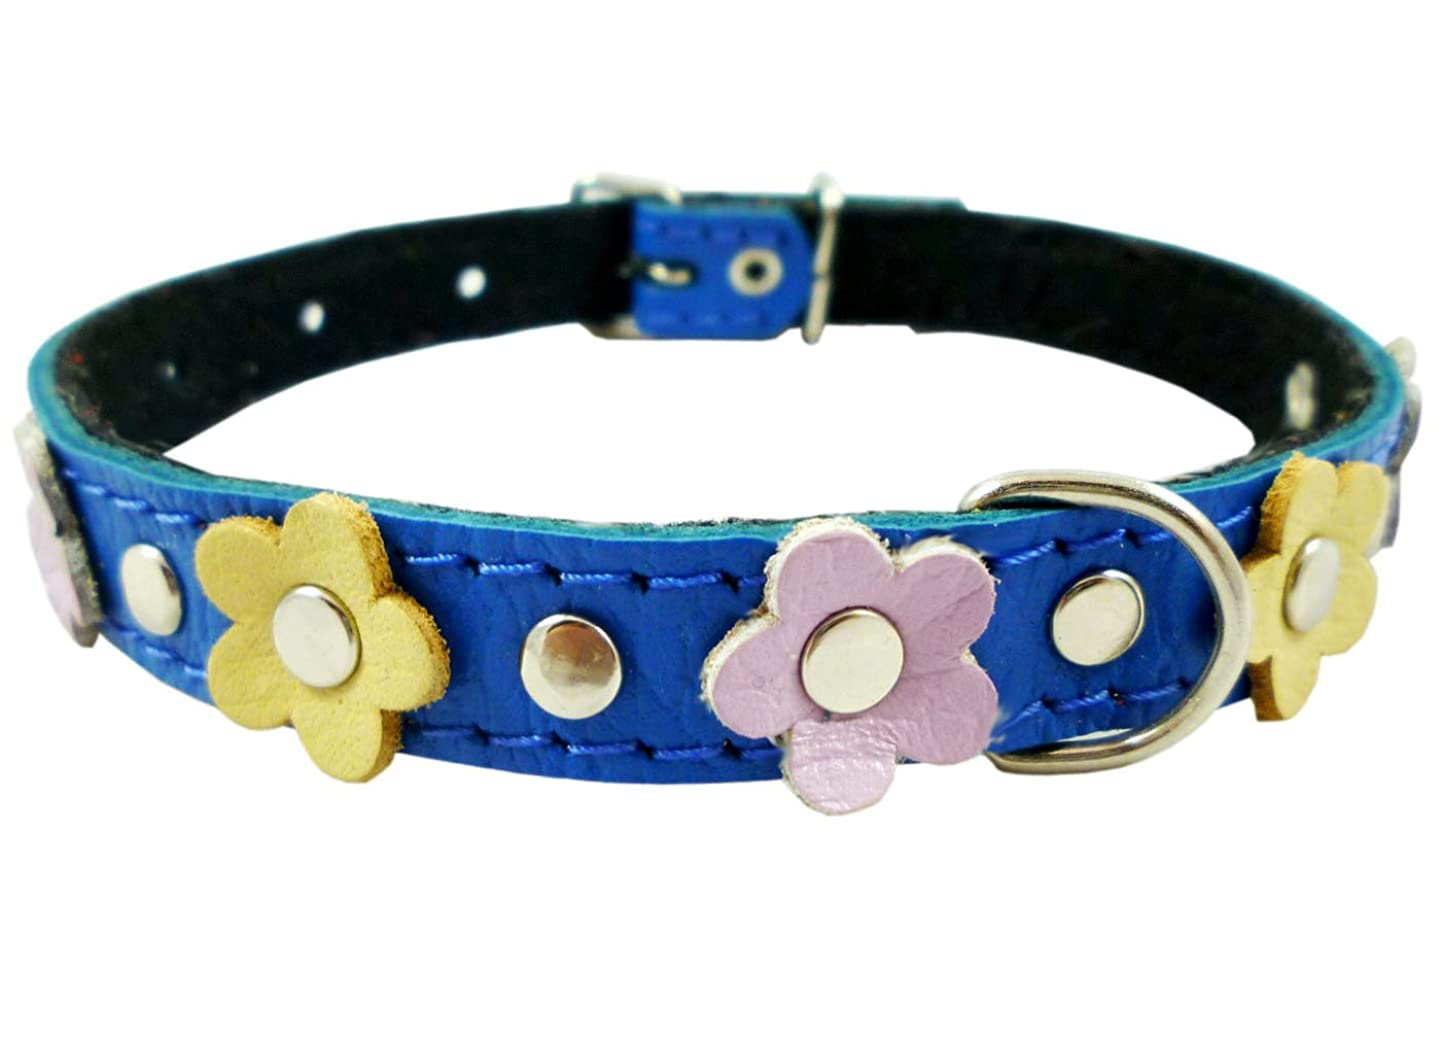 Genuine Leather Designer Dog Collar, Daisy, Studs. 11.5